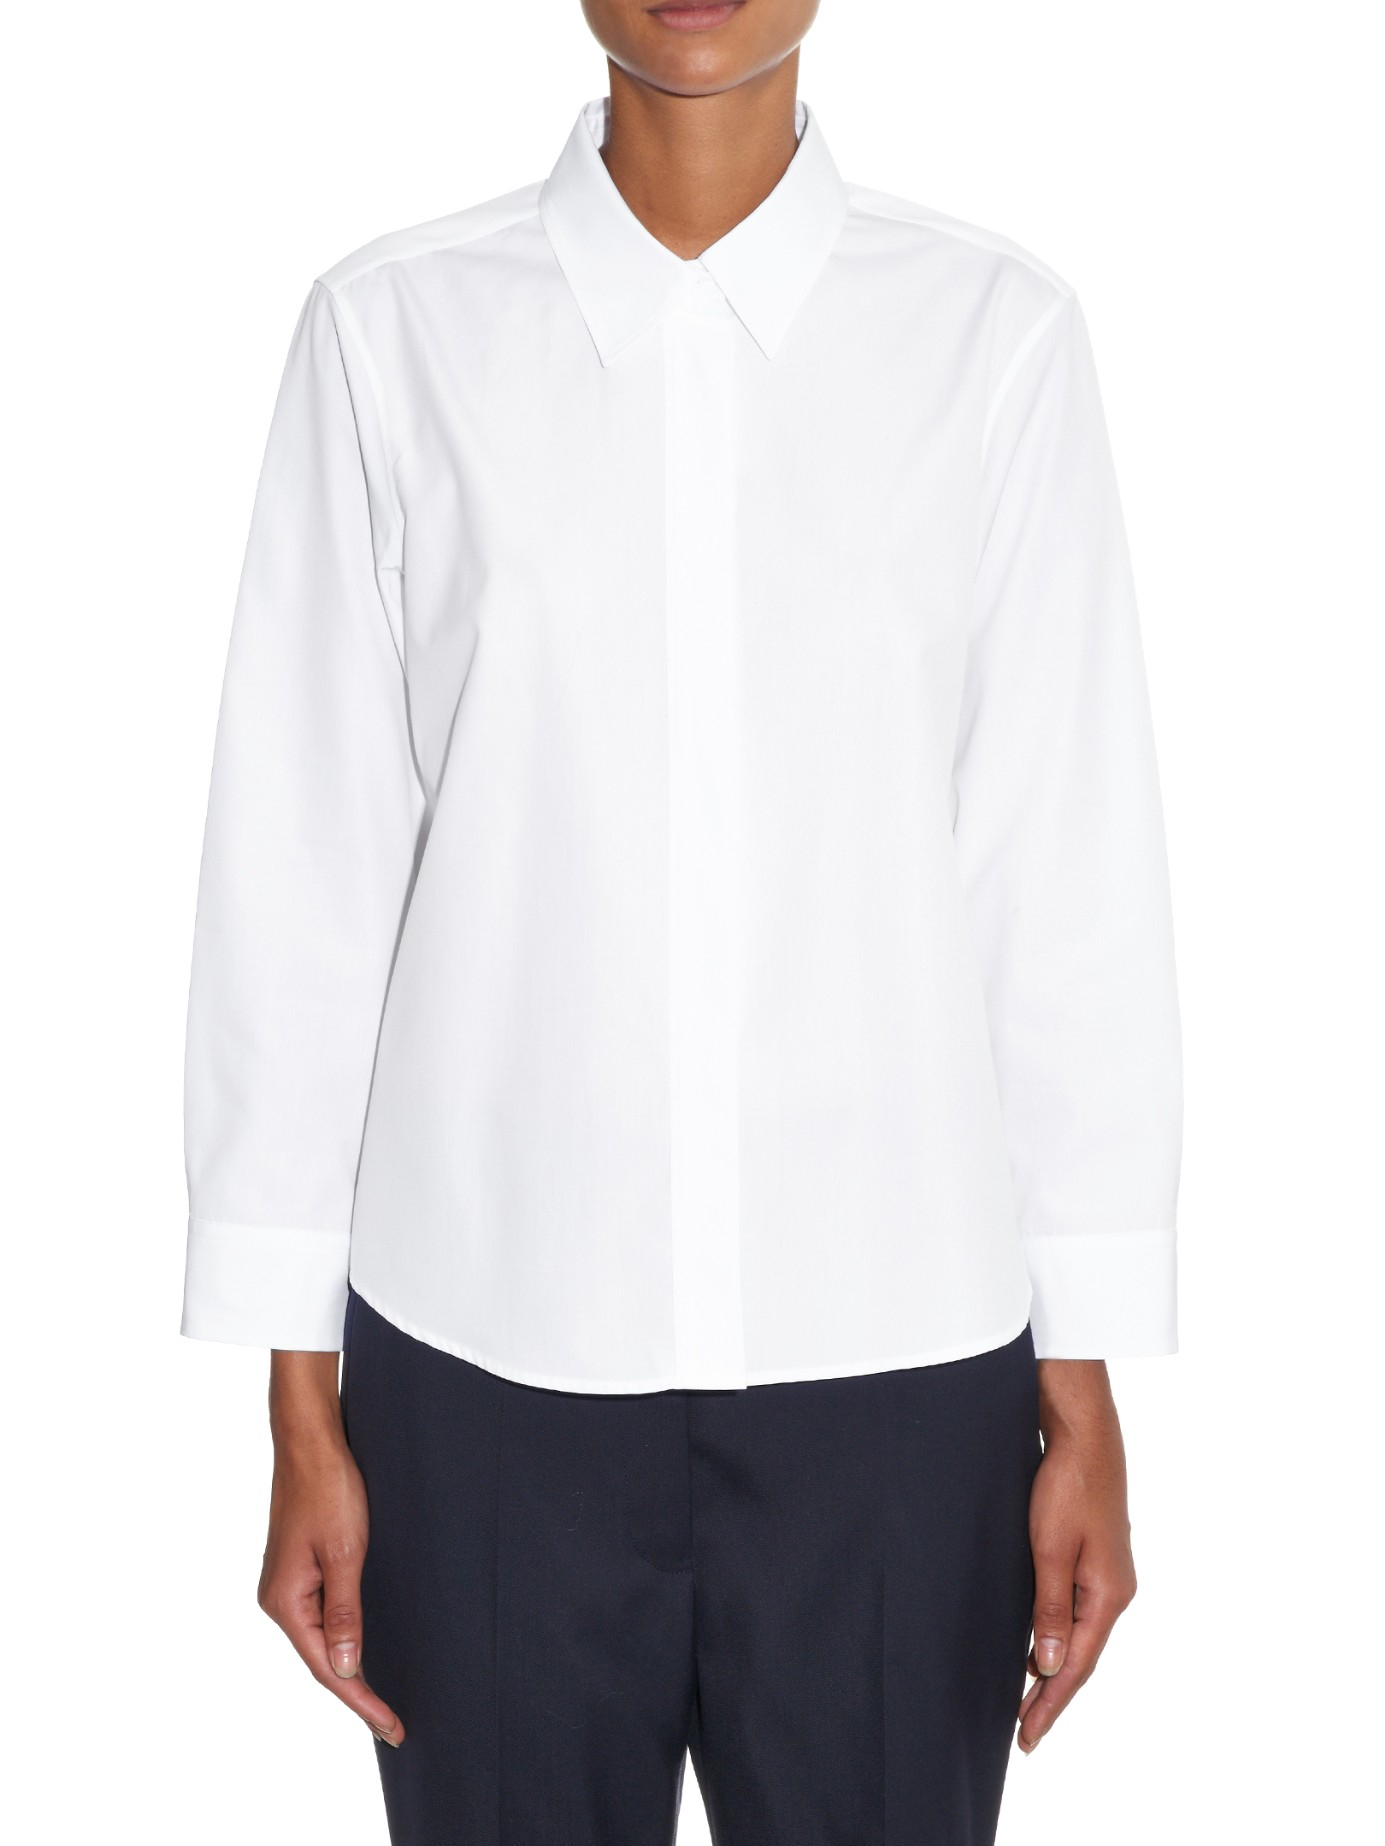 Pictures Online Jil Sander long sleeve top Clearance Clearance Store 9uTspAvnZH